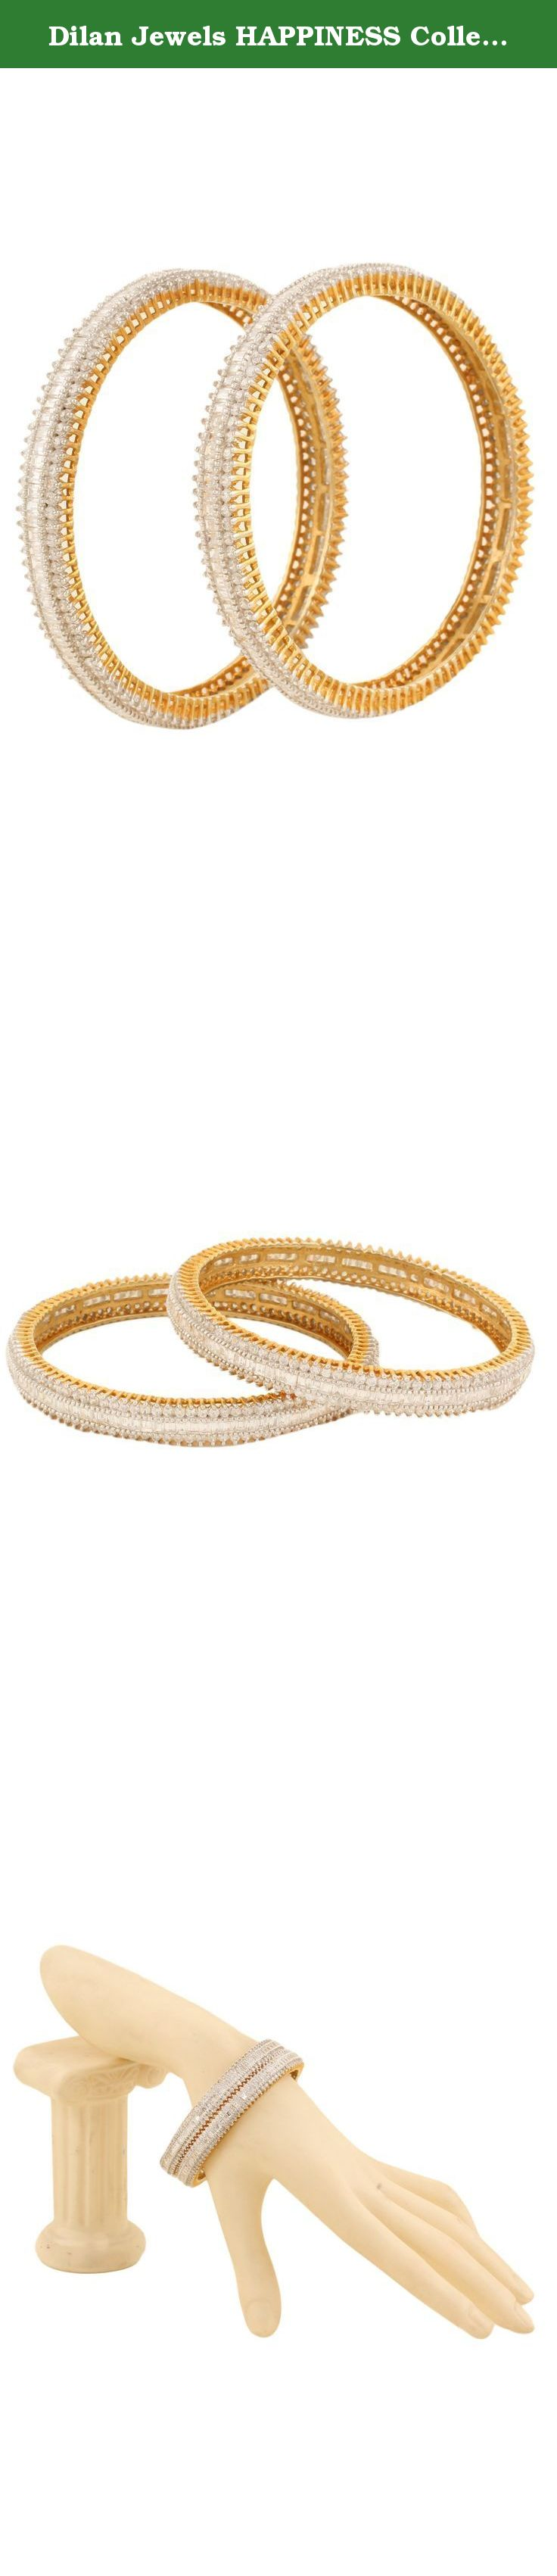 com jacknjewel delicate gold simple bracelet bangles designed yellow